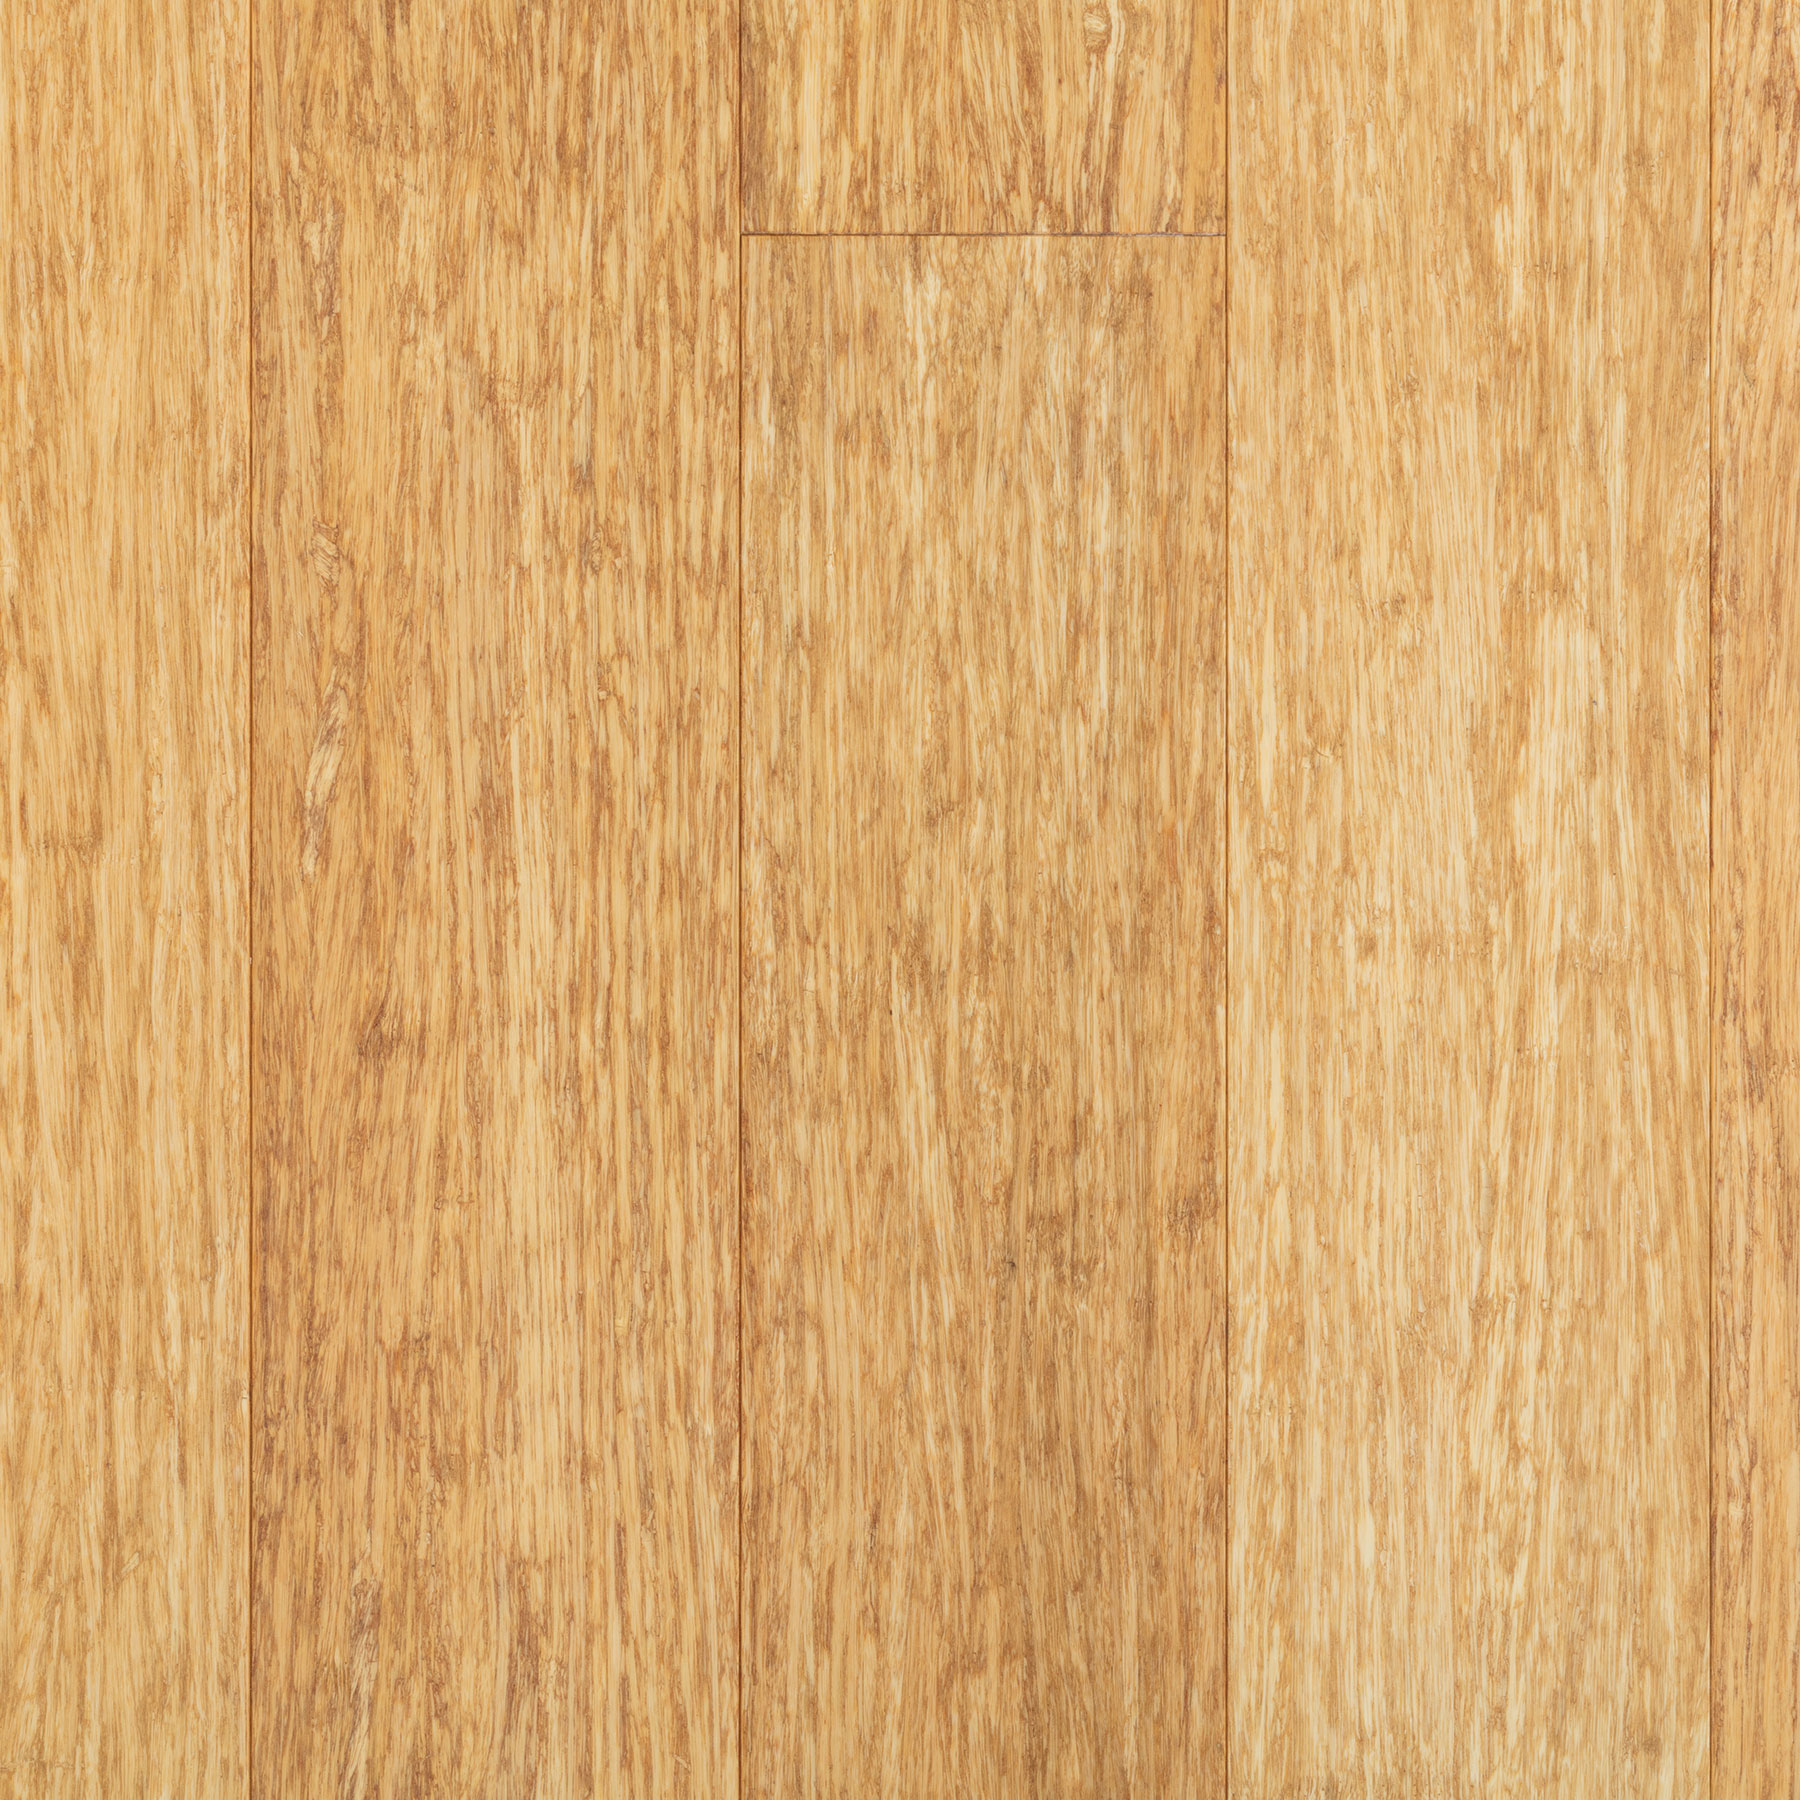 invitation flooring an accessories our and floor to solid of pioneer range at offers strand showroom located woven comprehensive timber australia bamboo inspect moso the